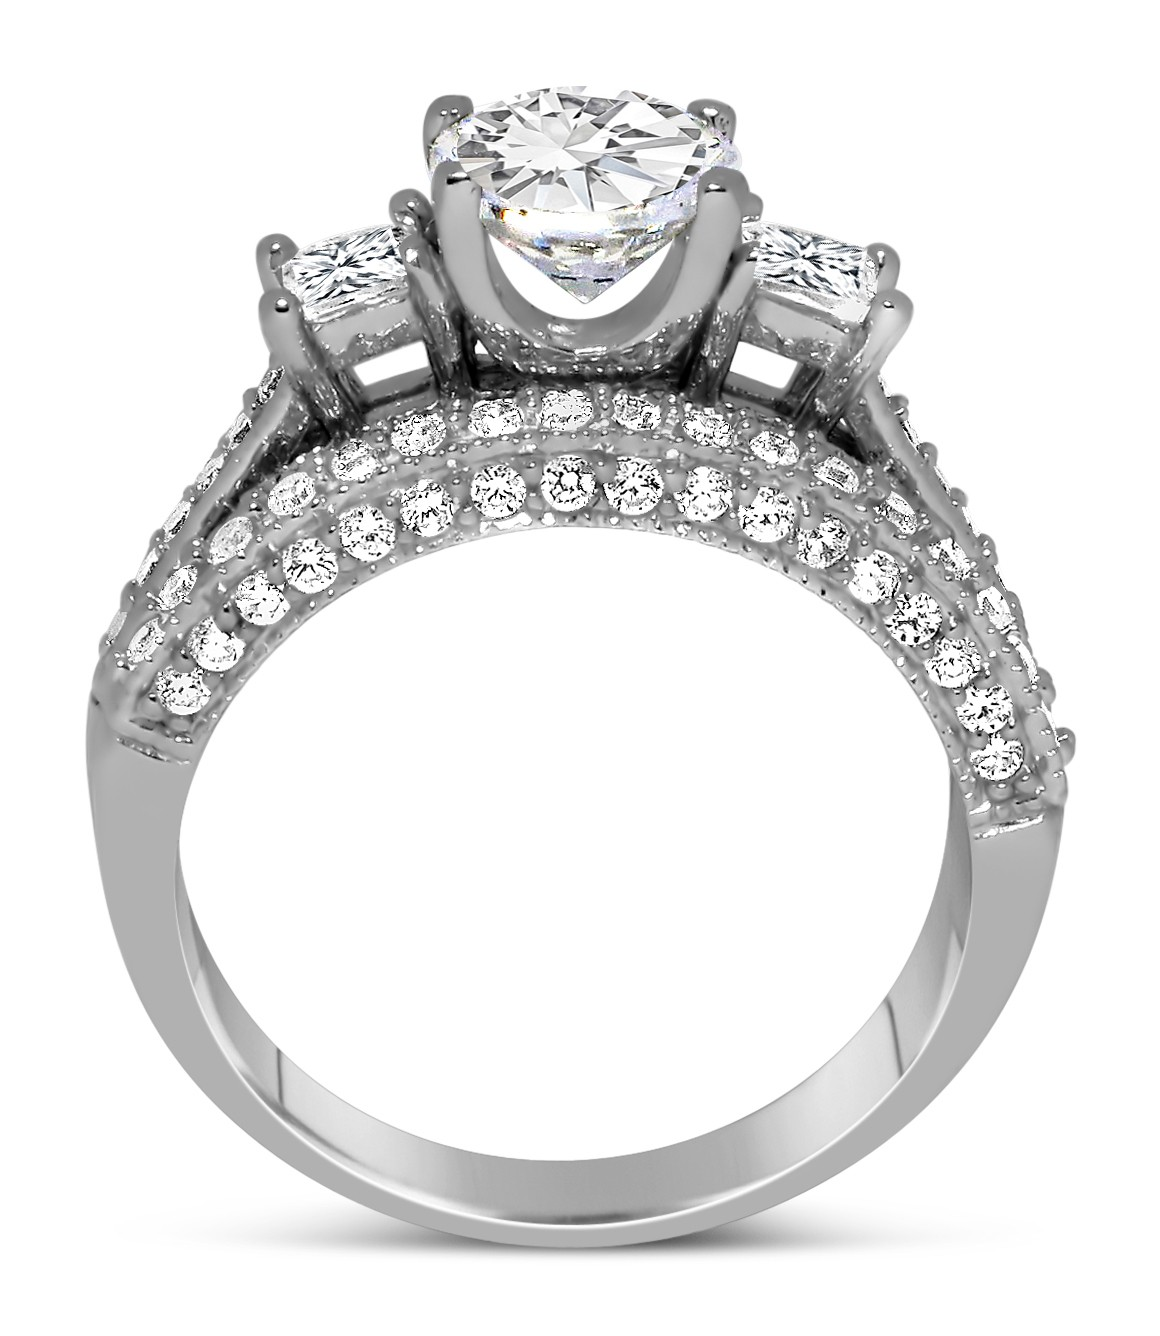 2 Carat Round and Princess Diamond Wedding Ring Set in White Gold